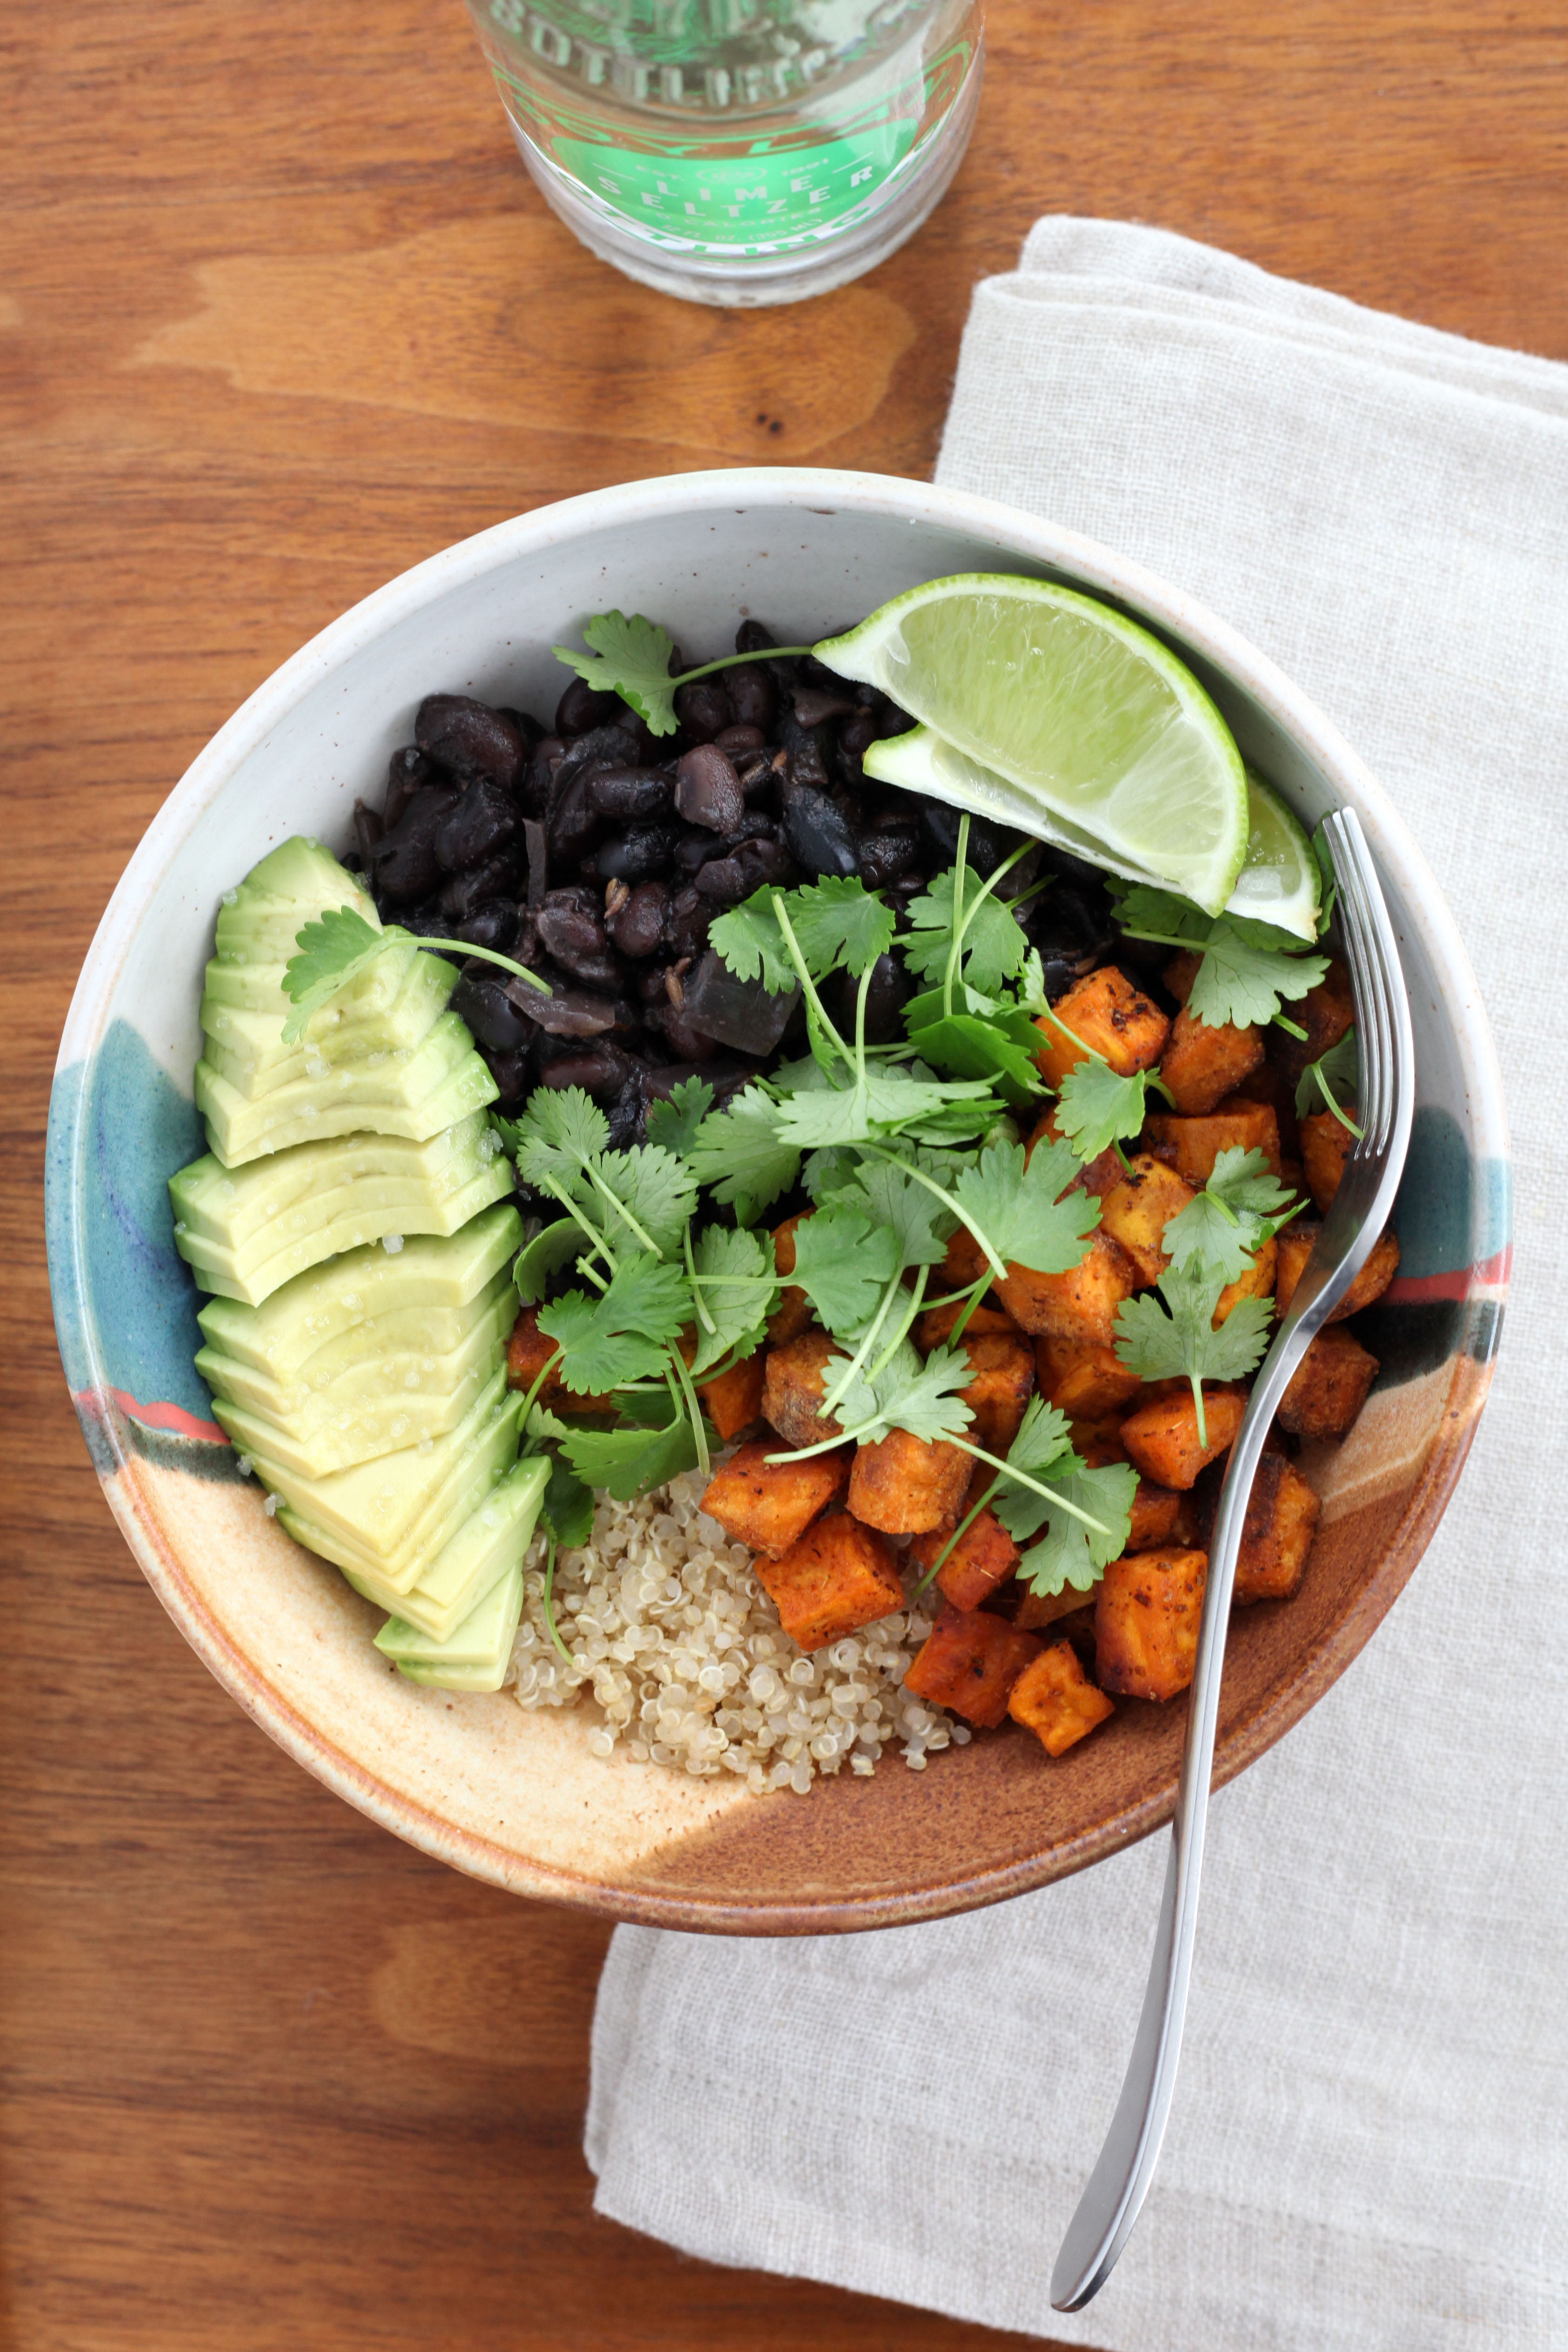 Slow-Cooker Black Beans With Quinoa and Sweet Potatoes (gluten-free, vegan) | amodestfeast.com | A Modest Feast